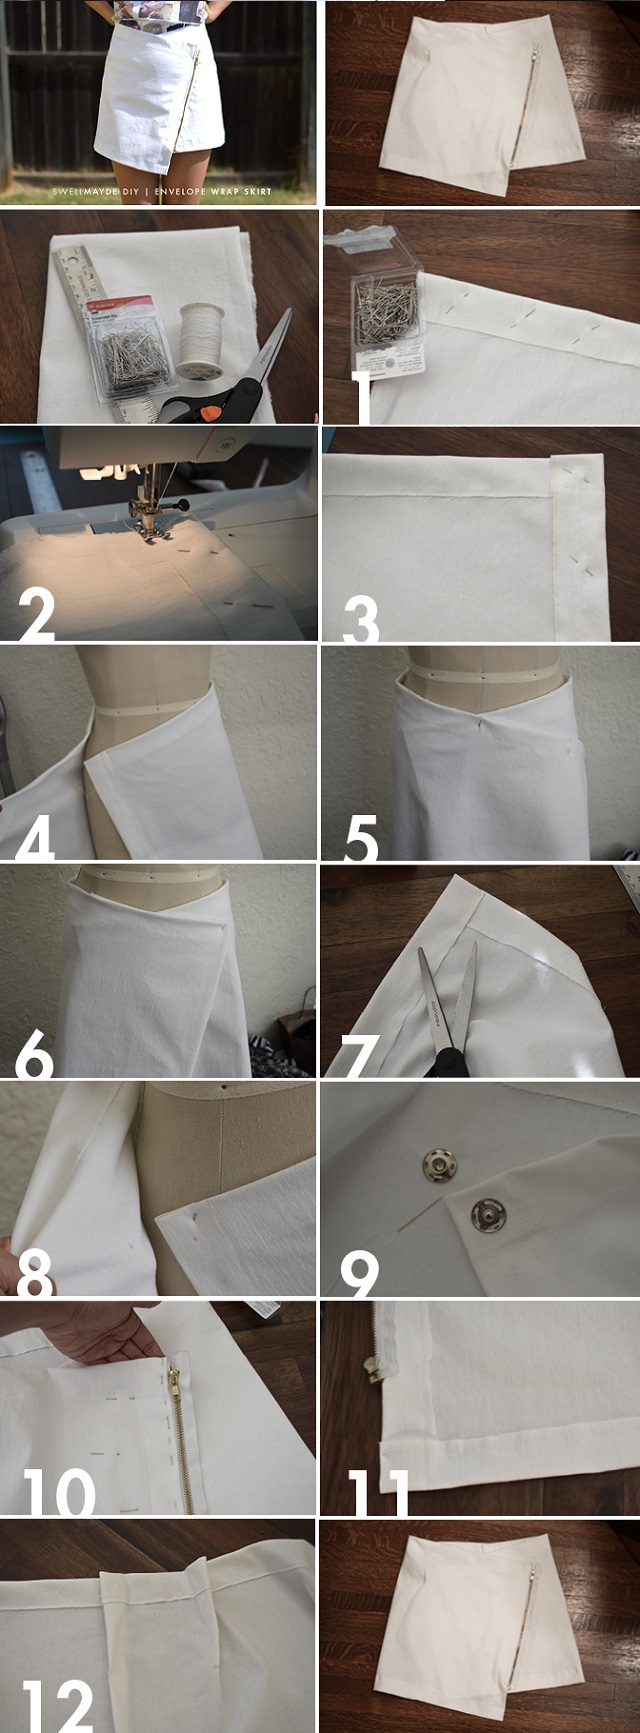 Easy to Make Envelope Wrap Skirt - DIY (2)